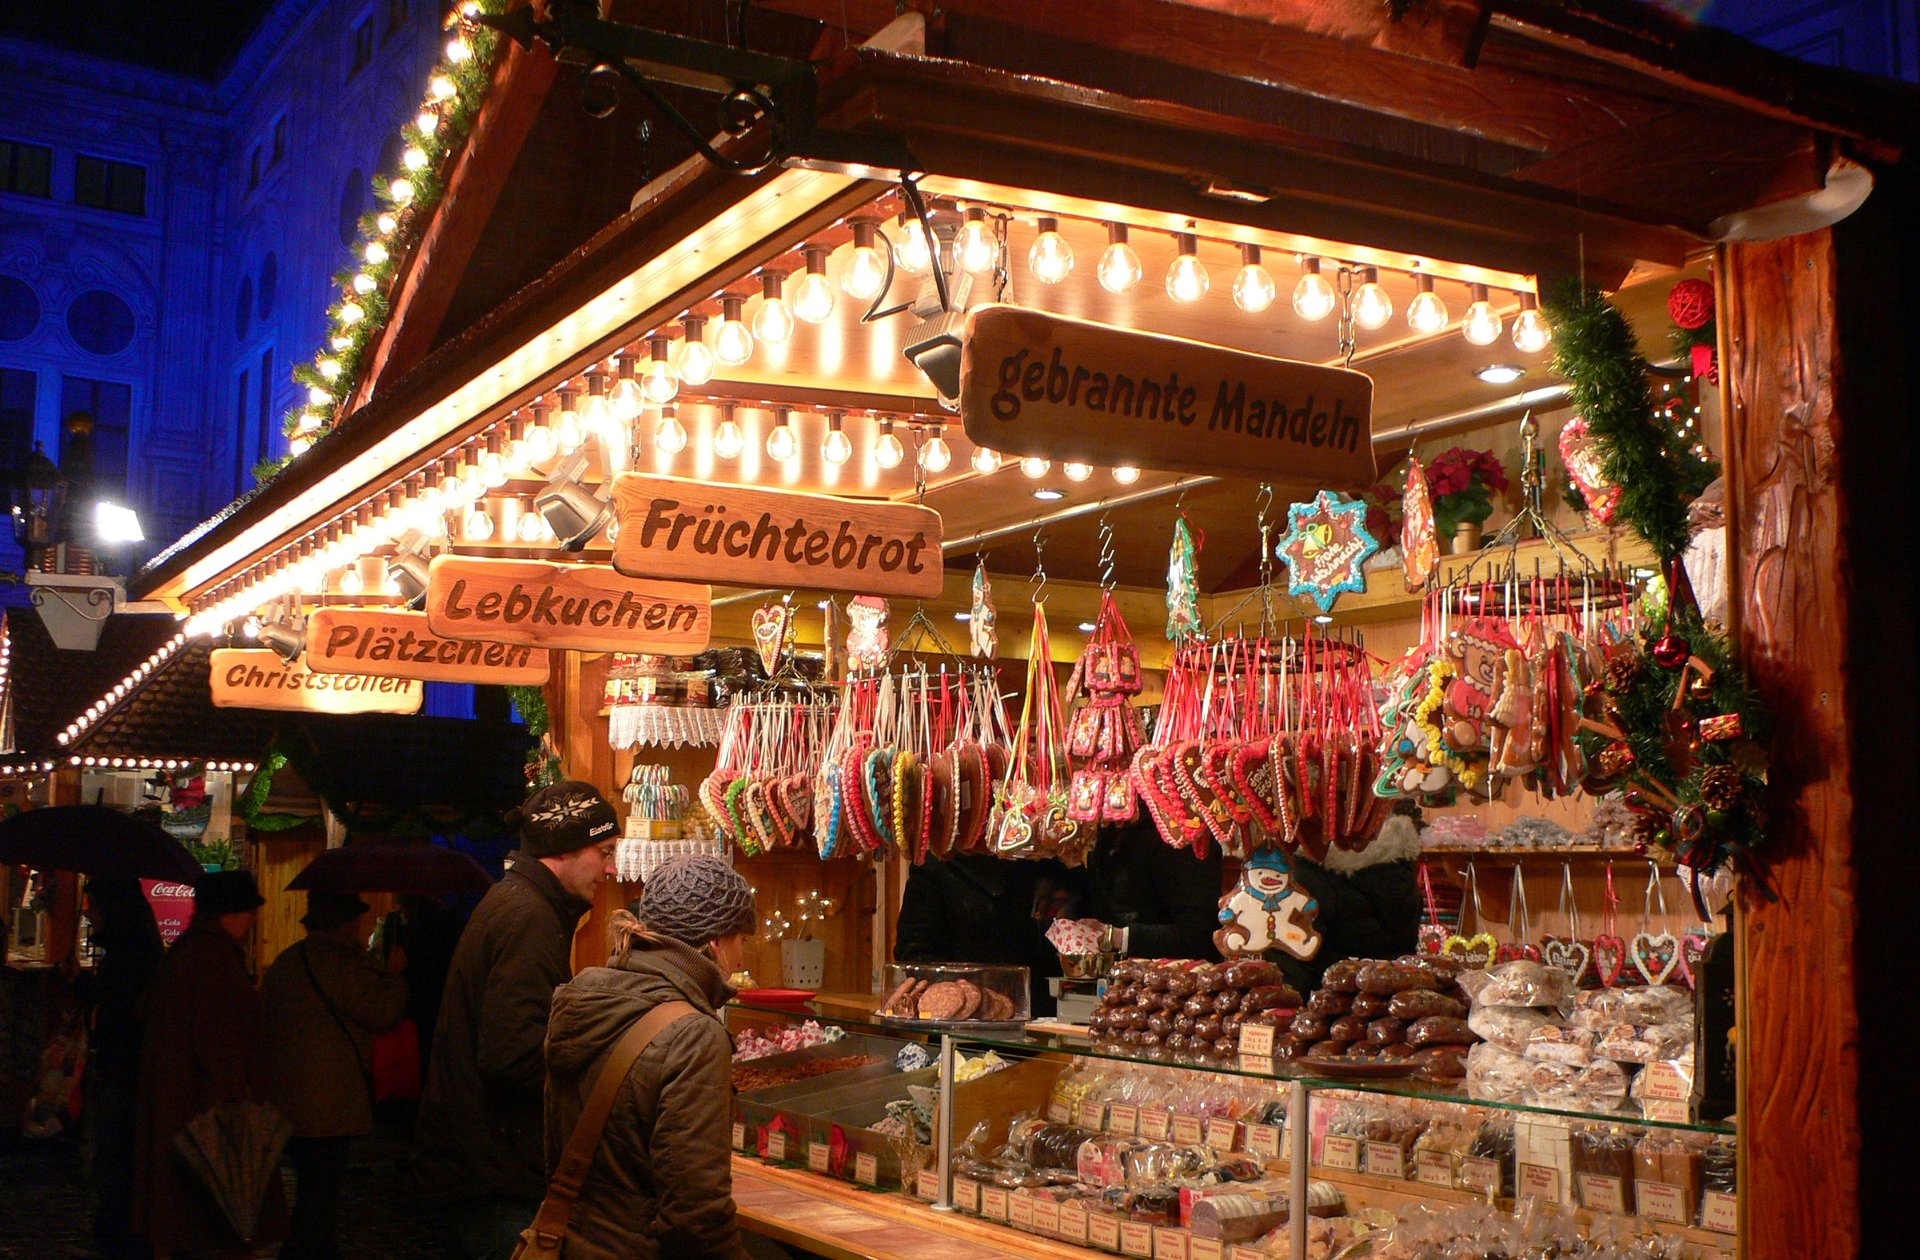 Christmas Market Foods in Bavaria 2019 - Best Time